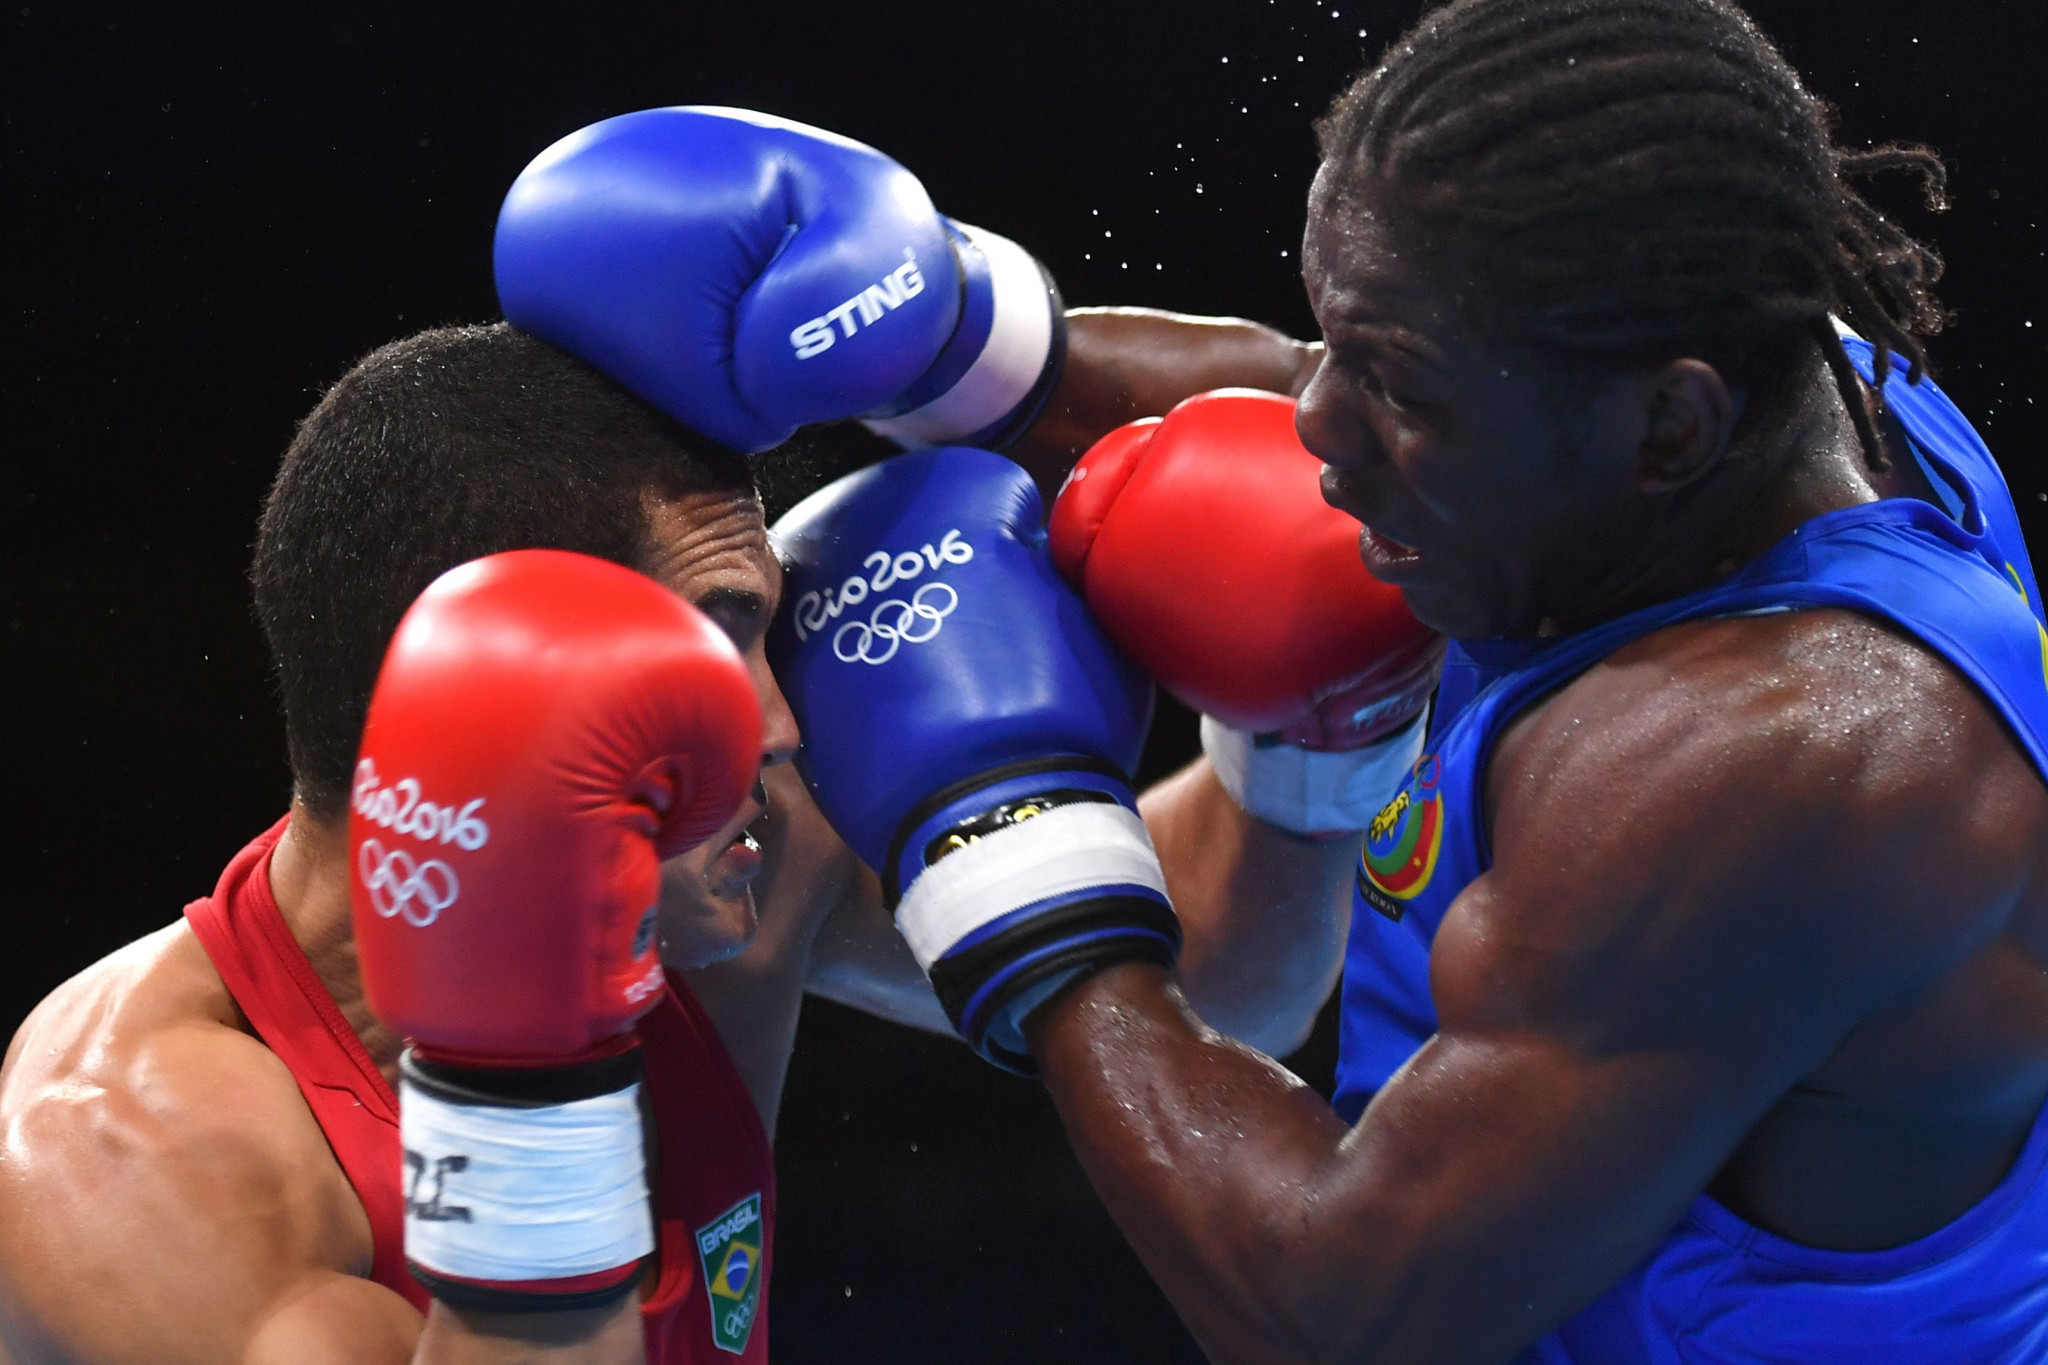 Cameroon's Hassan N'Dam, in blue, was one of three professional boxers to compete at Rio 2016 but he was beaten in the opening bout by Brazil's Michel Borges in the 81-kilograms category ©Getty Images